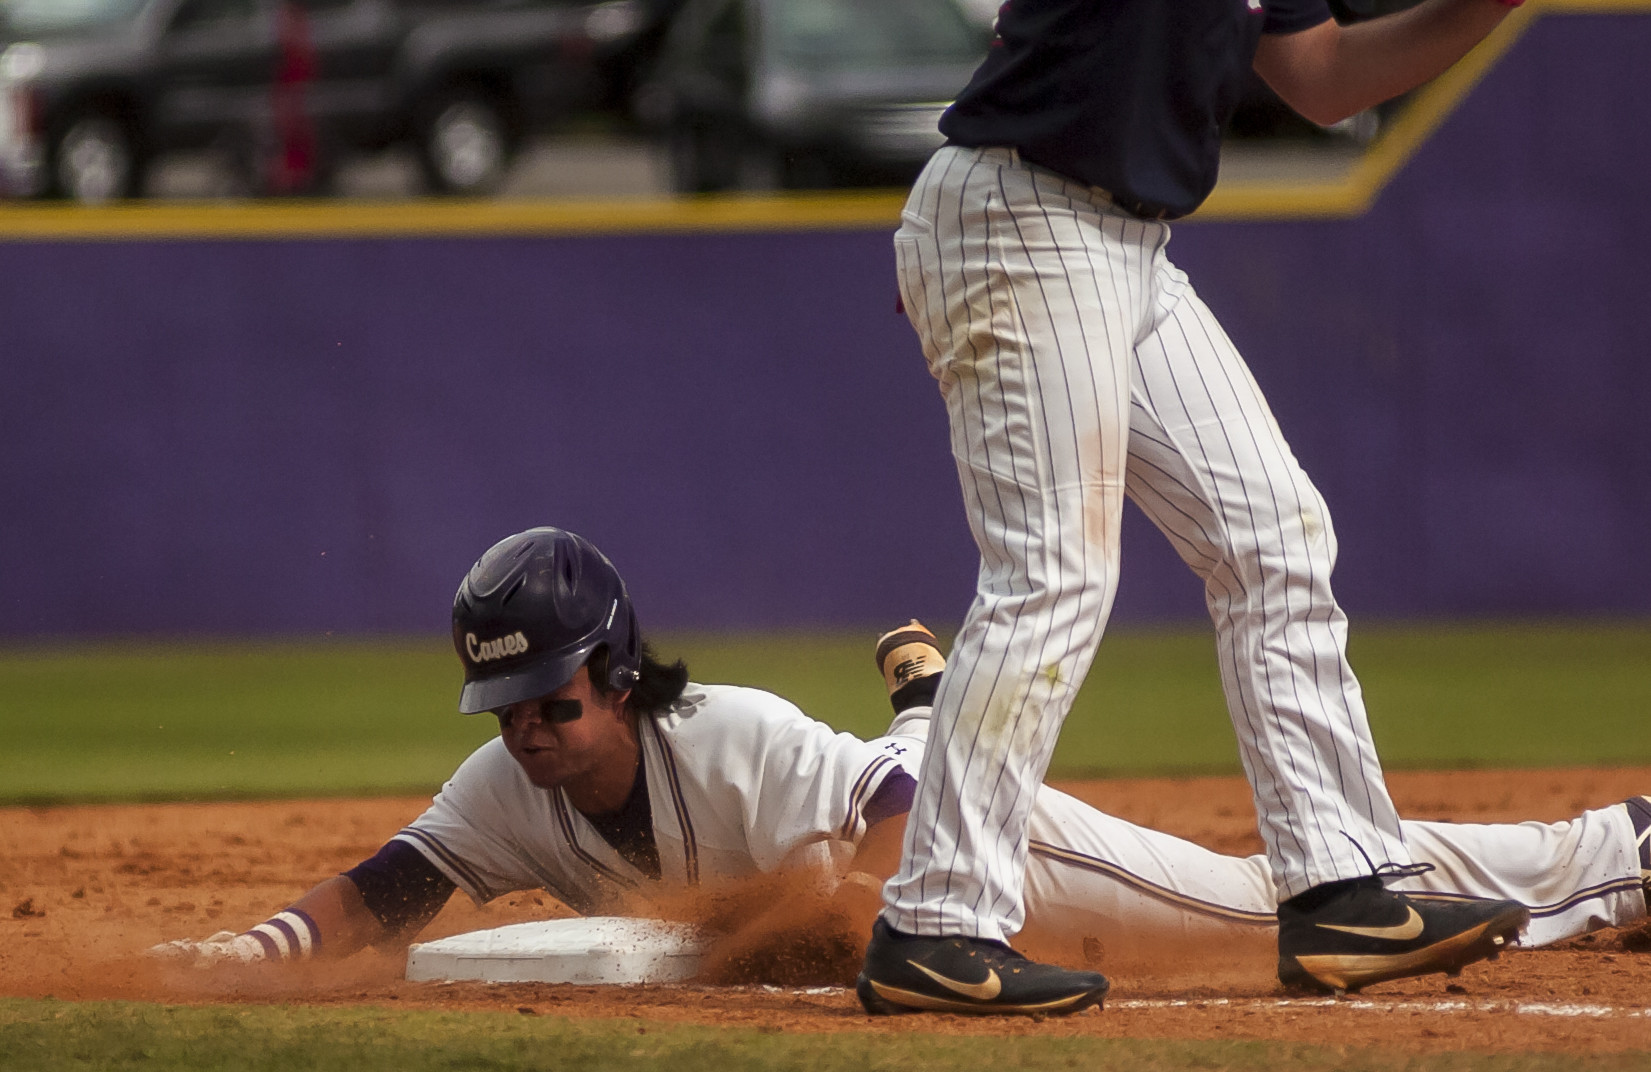 Anthony Seigler slides safely into third base.